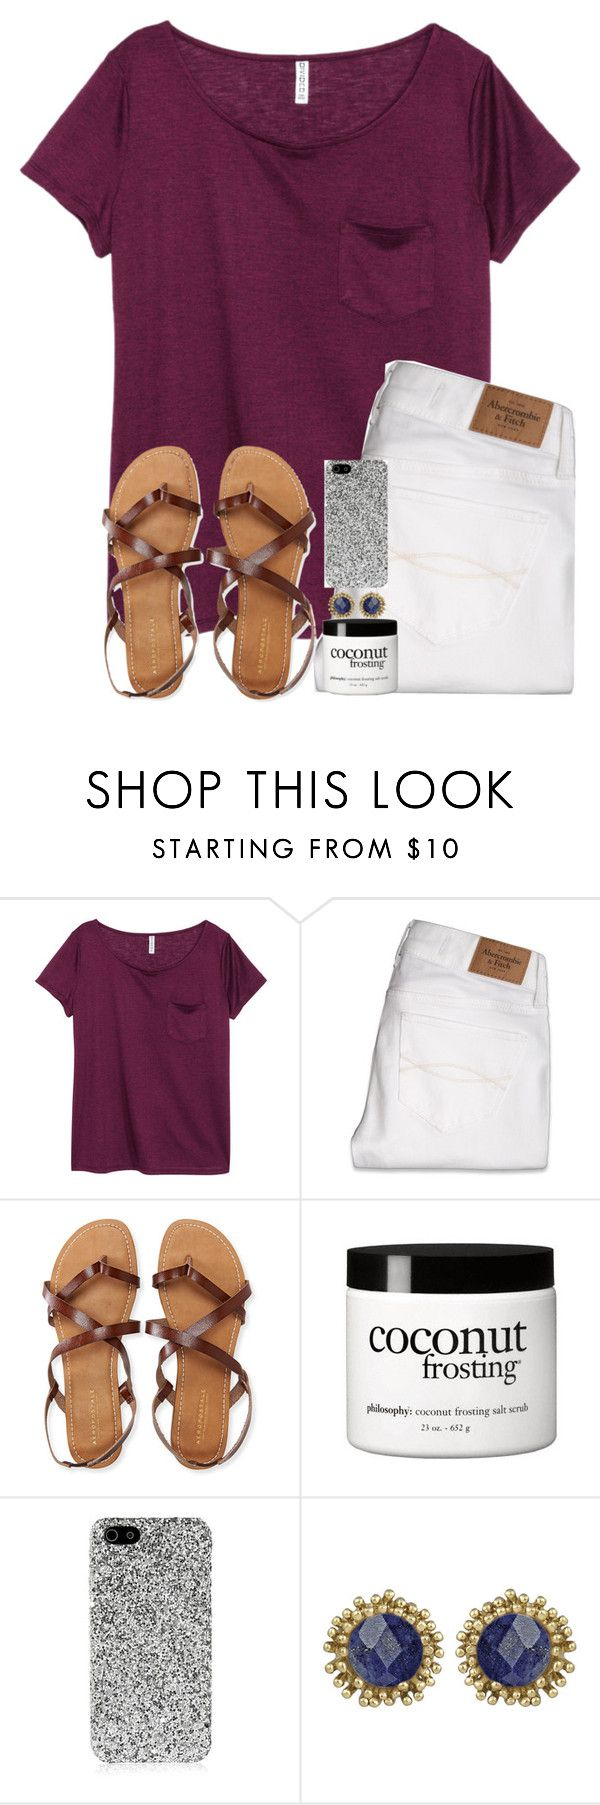 """""""Idk what to name this"""" by hgw8503 ❤ liked on Polyvore featuring H&M, Abercrombie & Fitch, Aéropostale, philosophy, Yves Saint Laurent, Kendra Scott and hgwmostlikedset"""